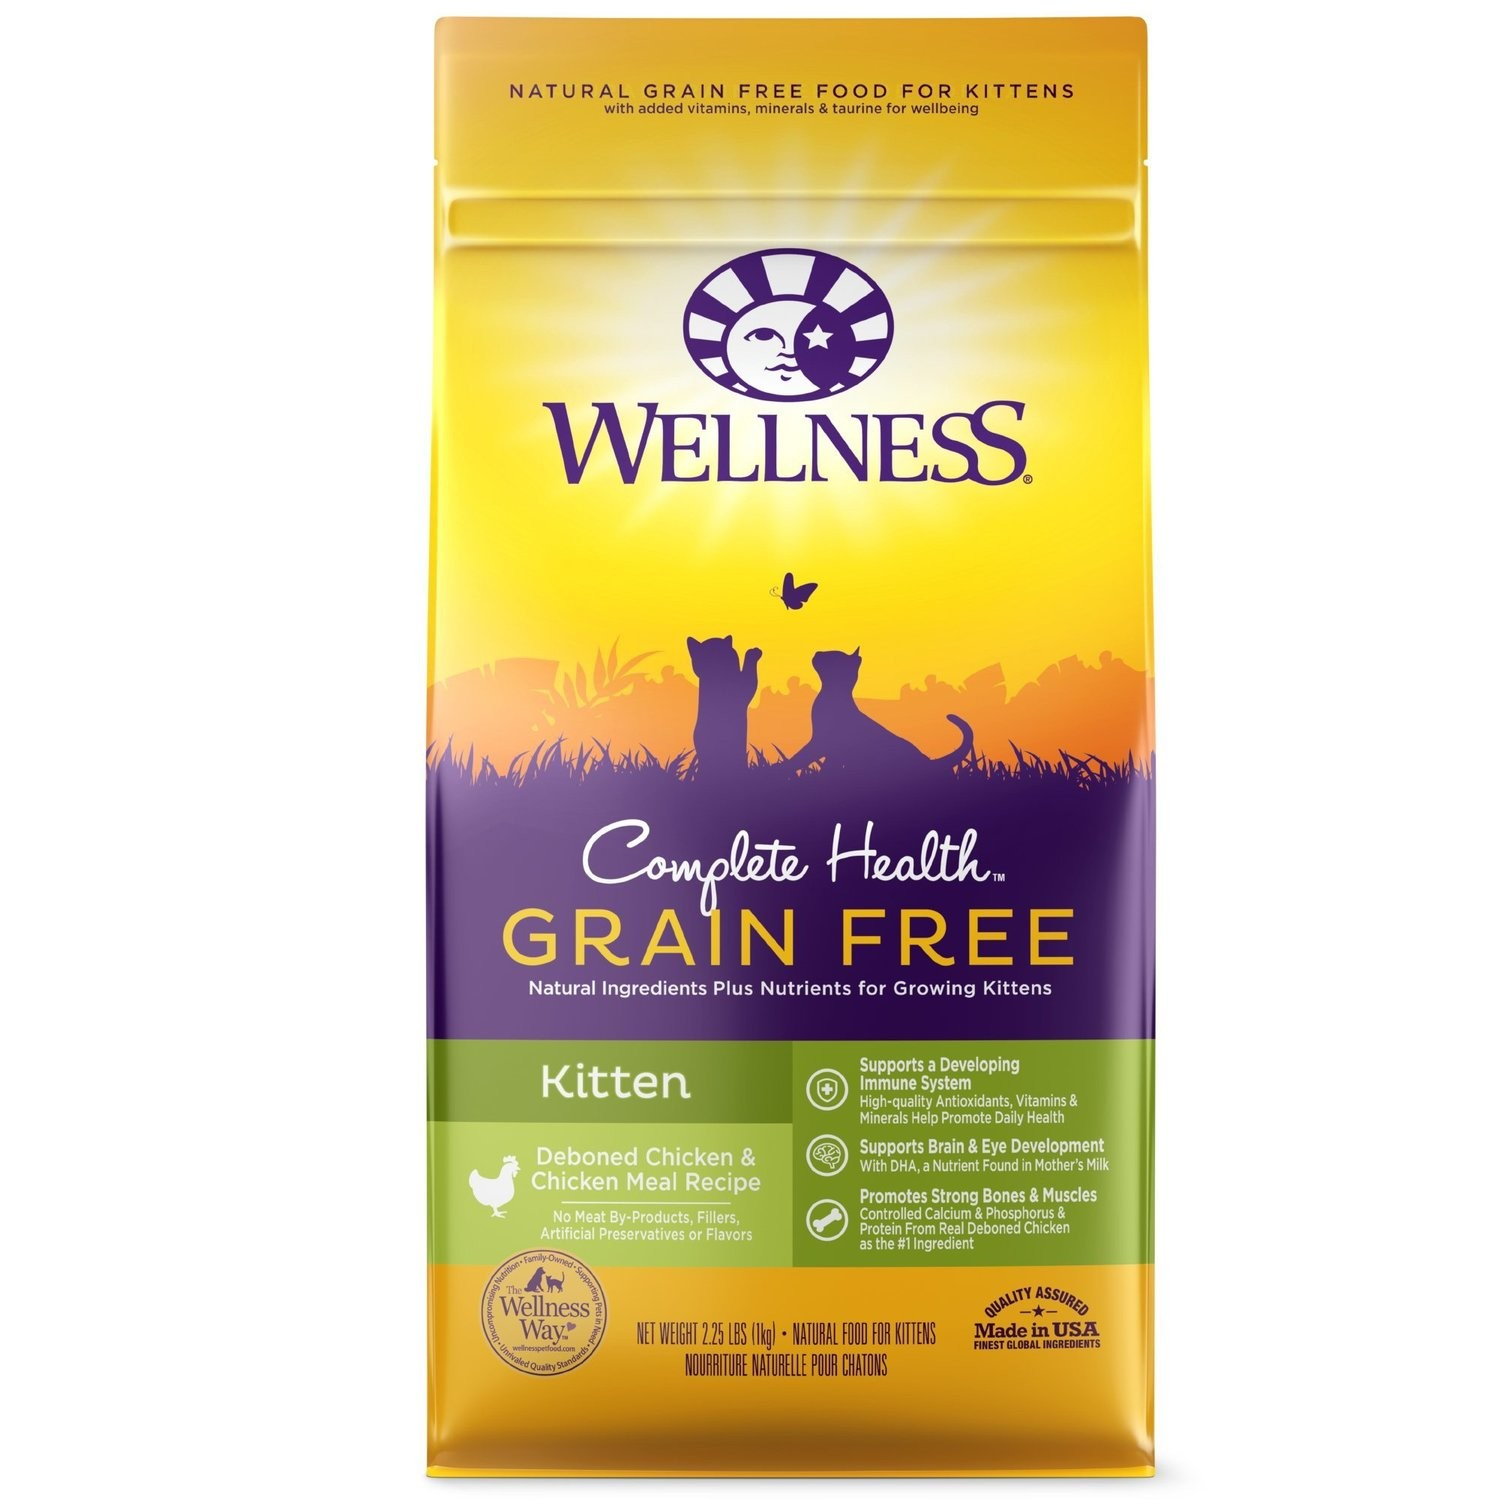 Wellness Complete Health Natural Grain Free Deboned Chicken & Chicken Meal Dry Cat Food 2.25 oz. (4/19) (A.K2)